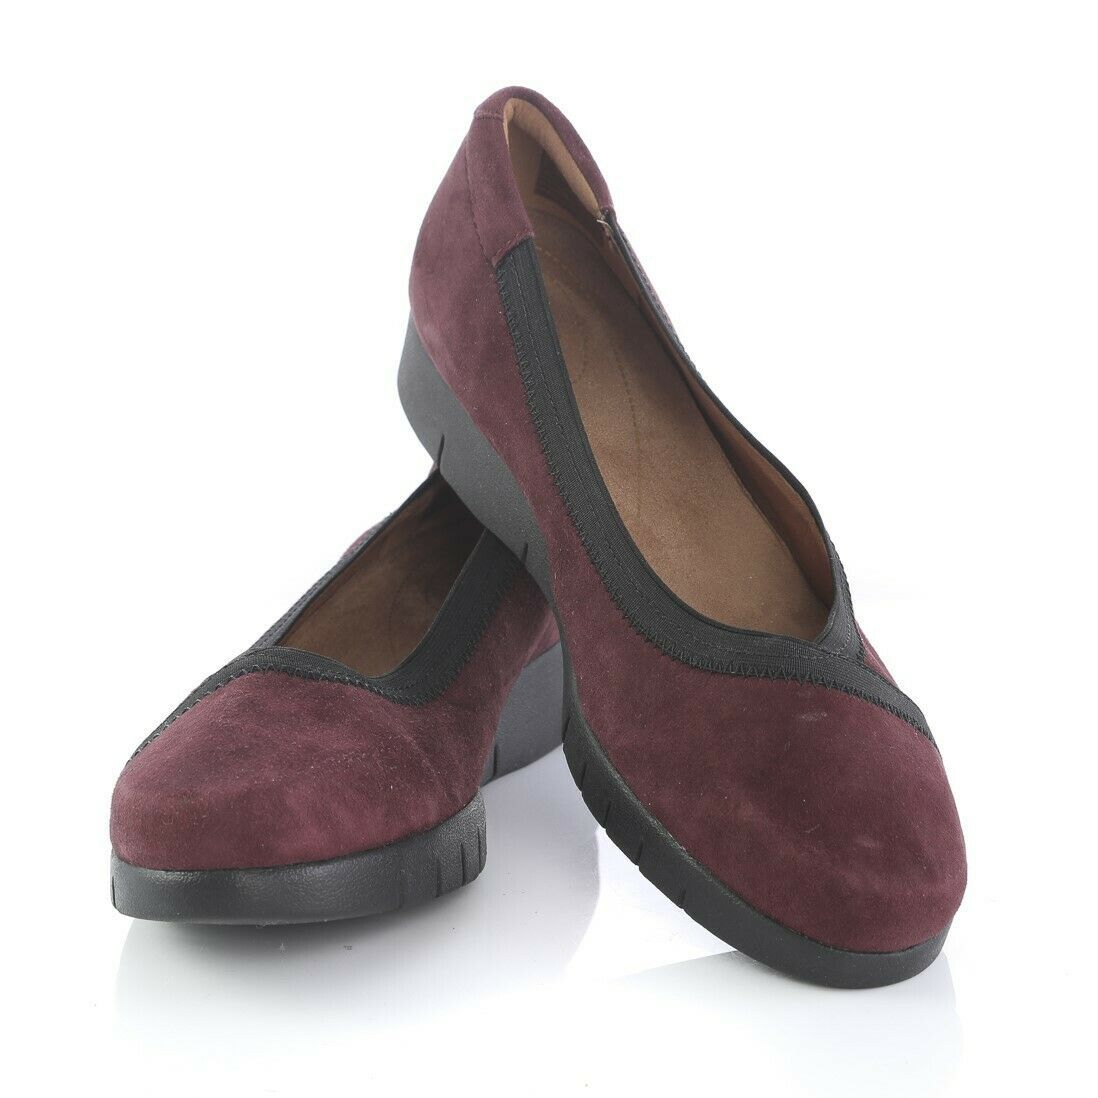 Primary image for Clarks Artisan Burgundy Suede Loafers Ballet Flats Comfort Shoes Womens 8 M